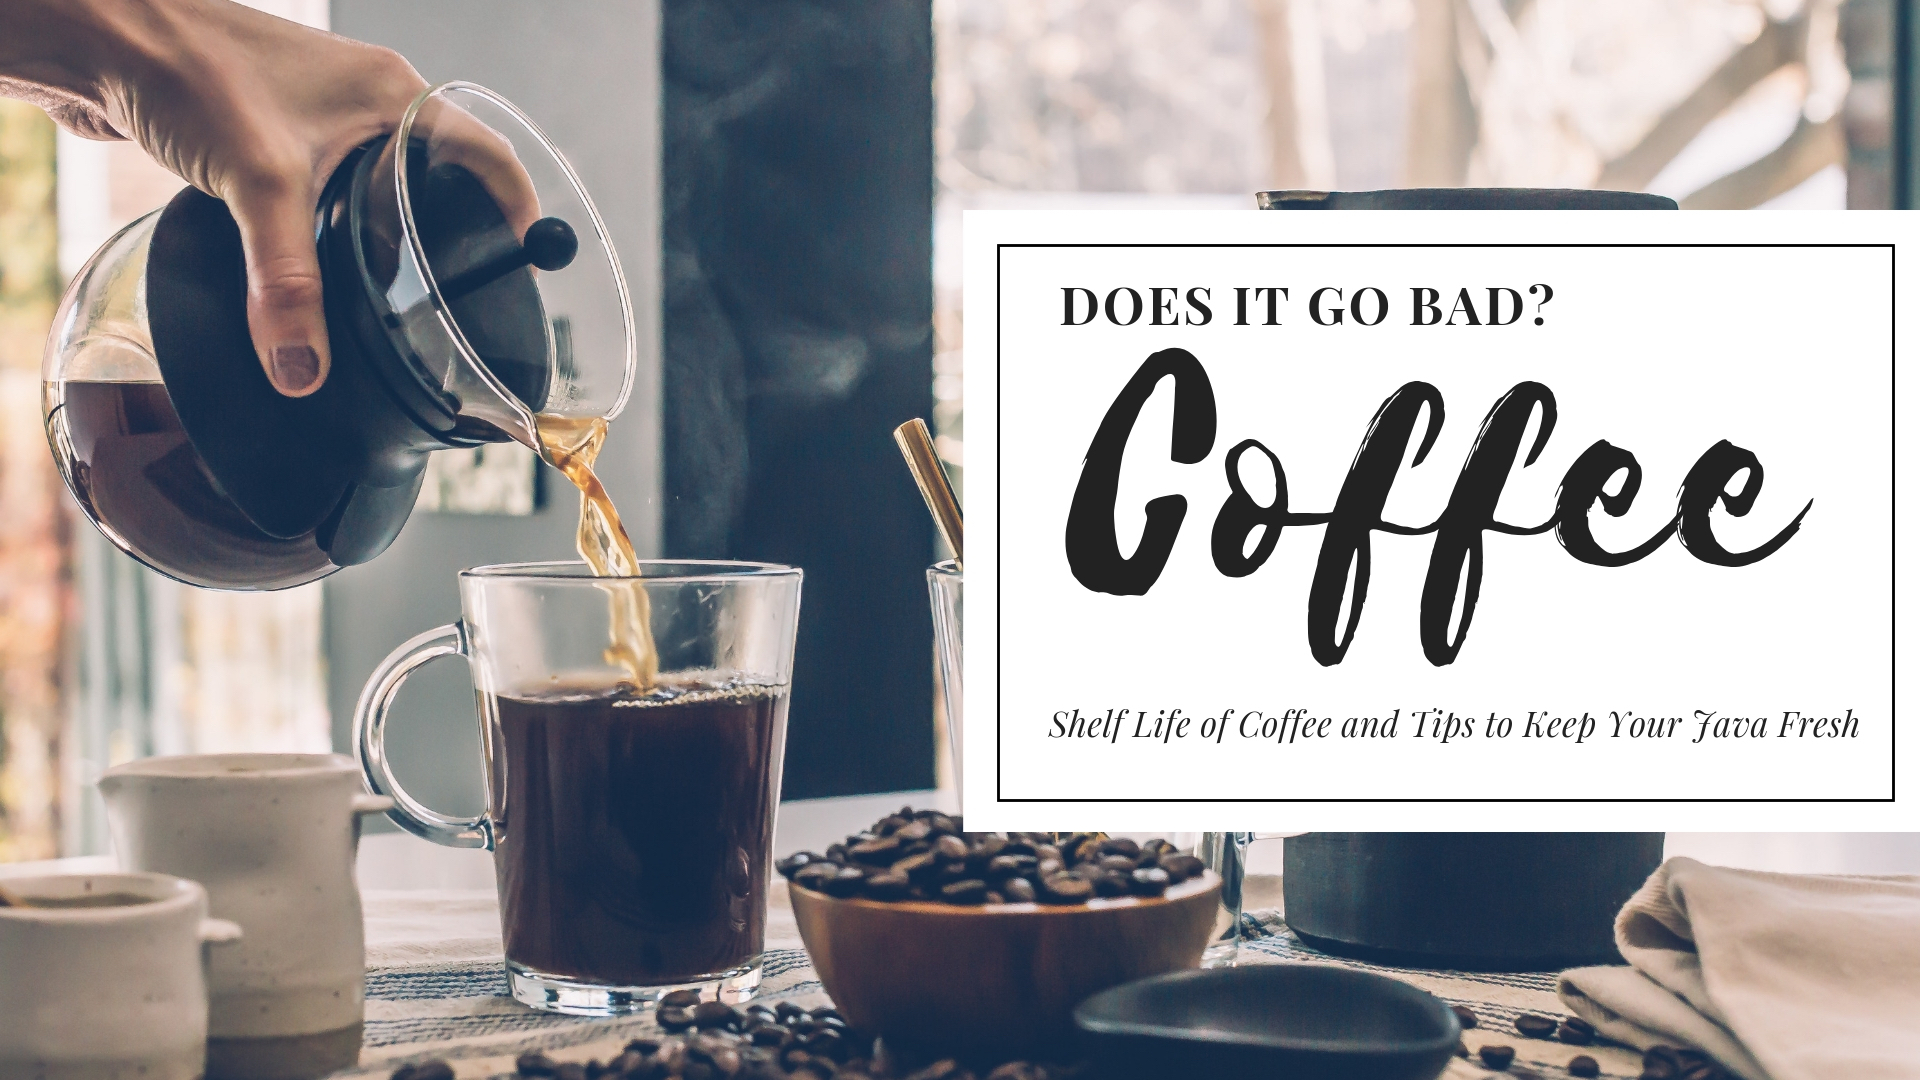 Does Coffee Go Bad? Shelf Life of Coffee and Tips to Keep Your Java Fresh